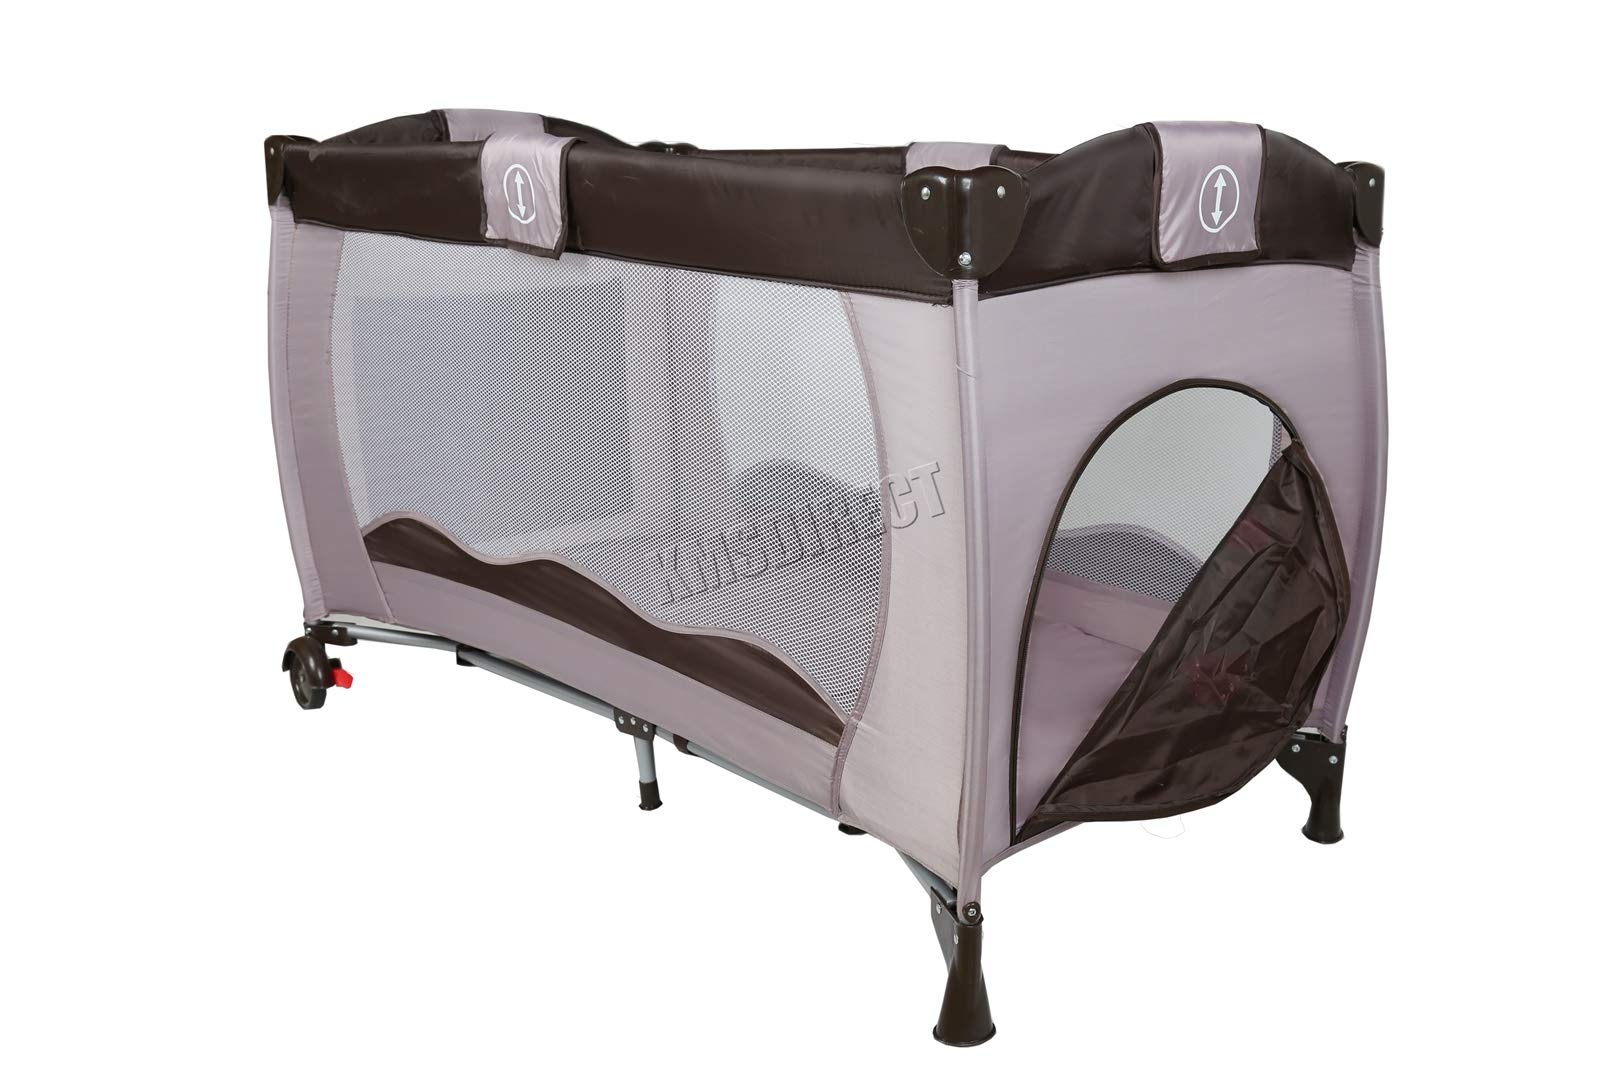 FoxHunter Portable Baby Cot Sleeping Bed Kids Infant Playpen Bassinet Child Play Pen with Entryway Travel BCB01 Coffee FoxHunter Travel cot easy to assemble and disassemble thanks to folding mechanism; igh quality and light weight; Fast and easy set-up, safe material and easy to clean; 5